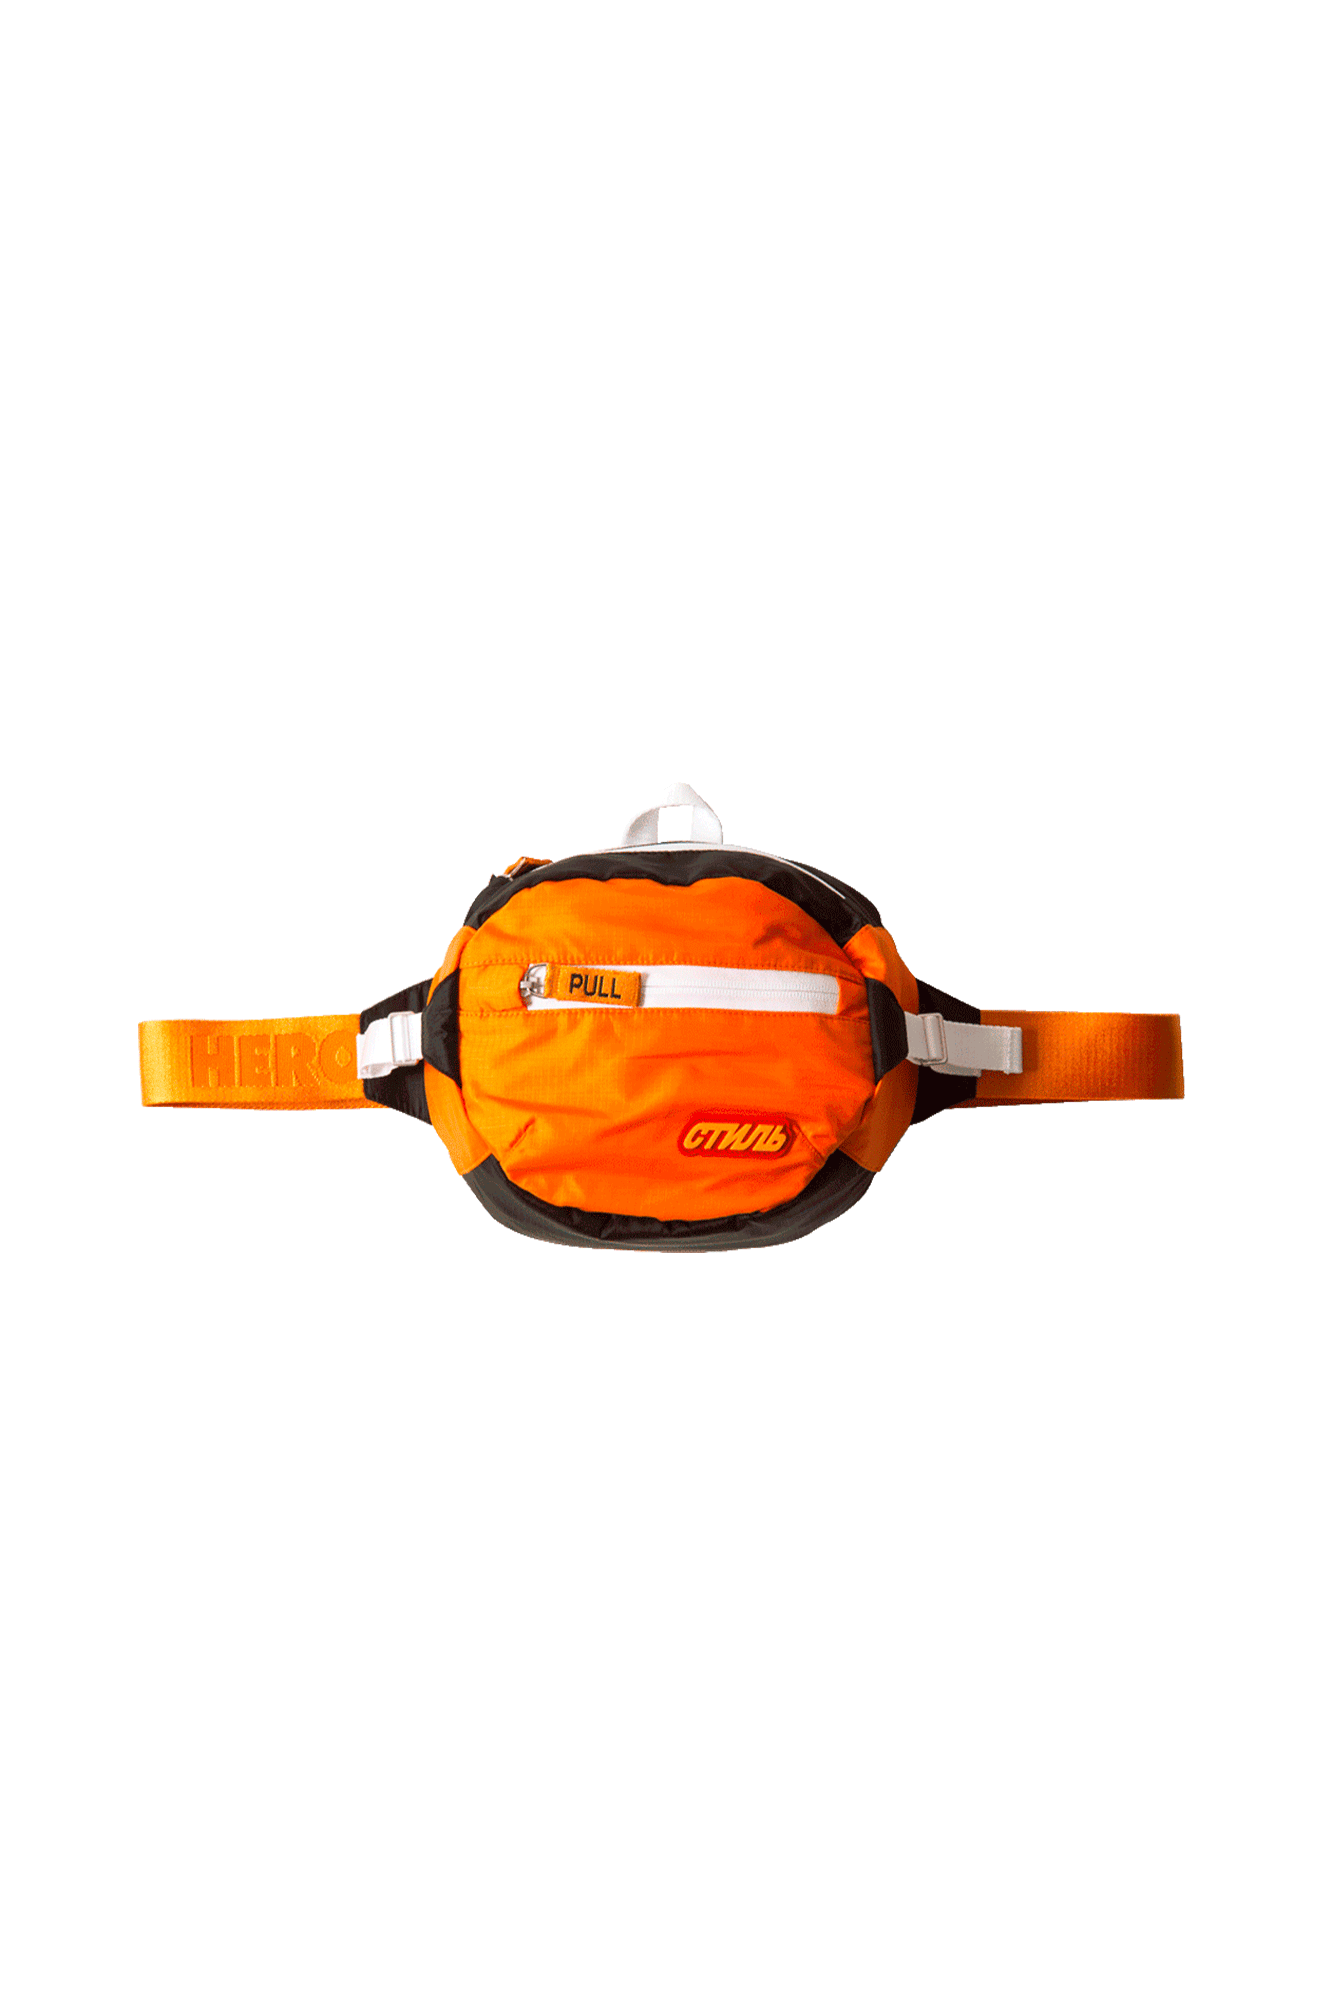 CTNMB Padded Fanny Pack Orange Orange Arancione